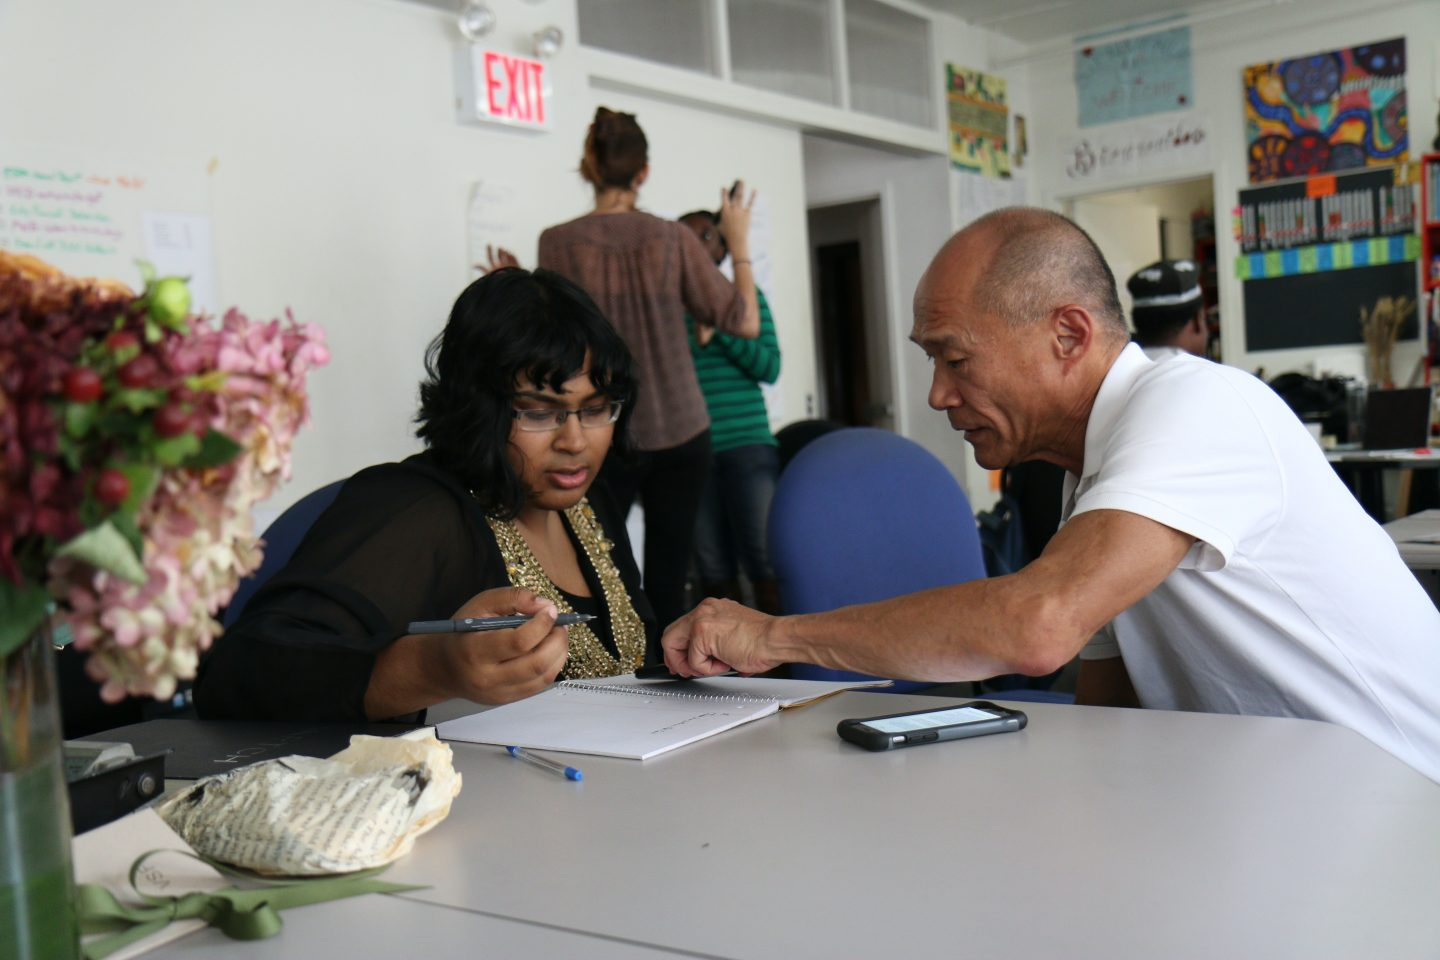 a woman and man sitting at a table with a mobile phone and a notebook